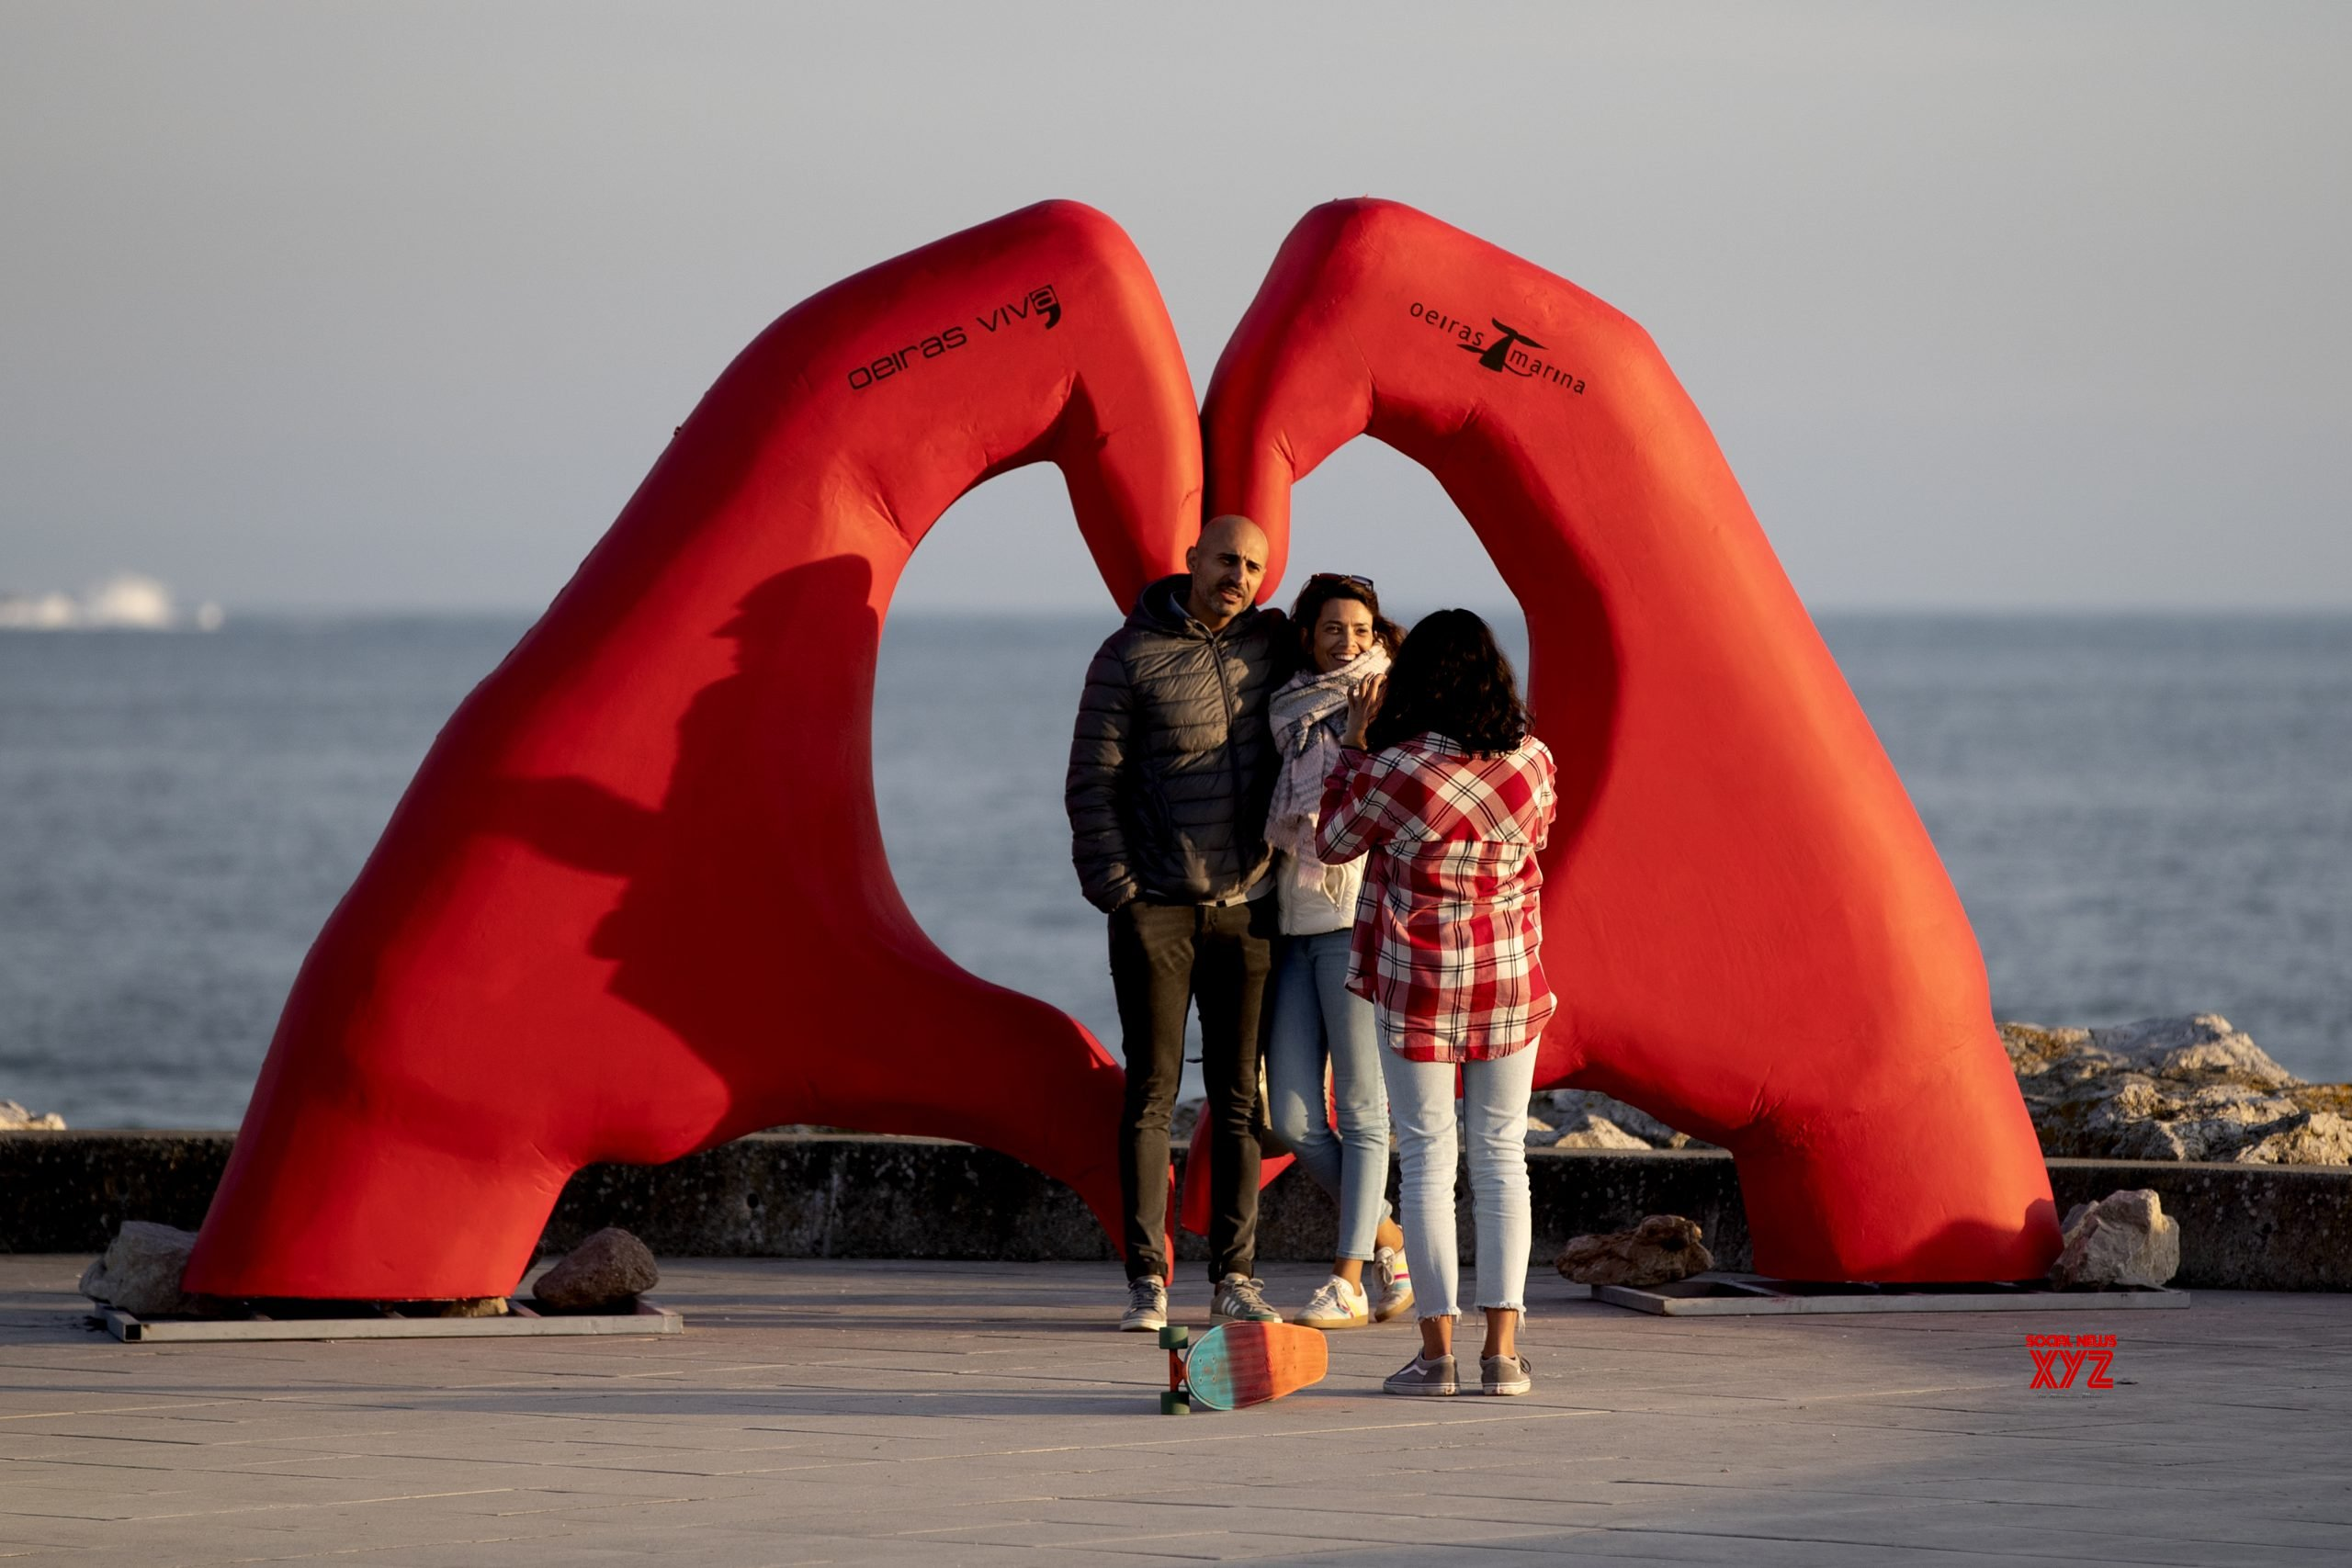 PORTUGAL - LISBON - VALENTINE'S DAY #Gallery